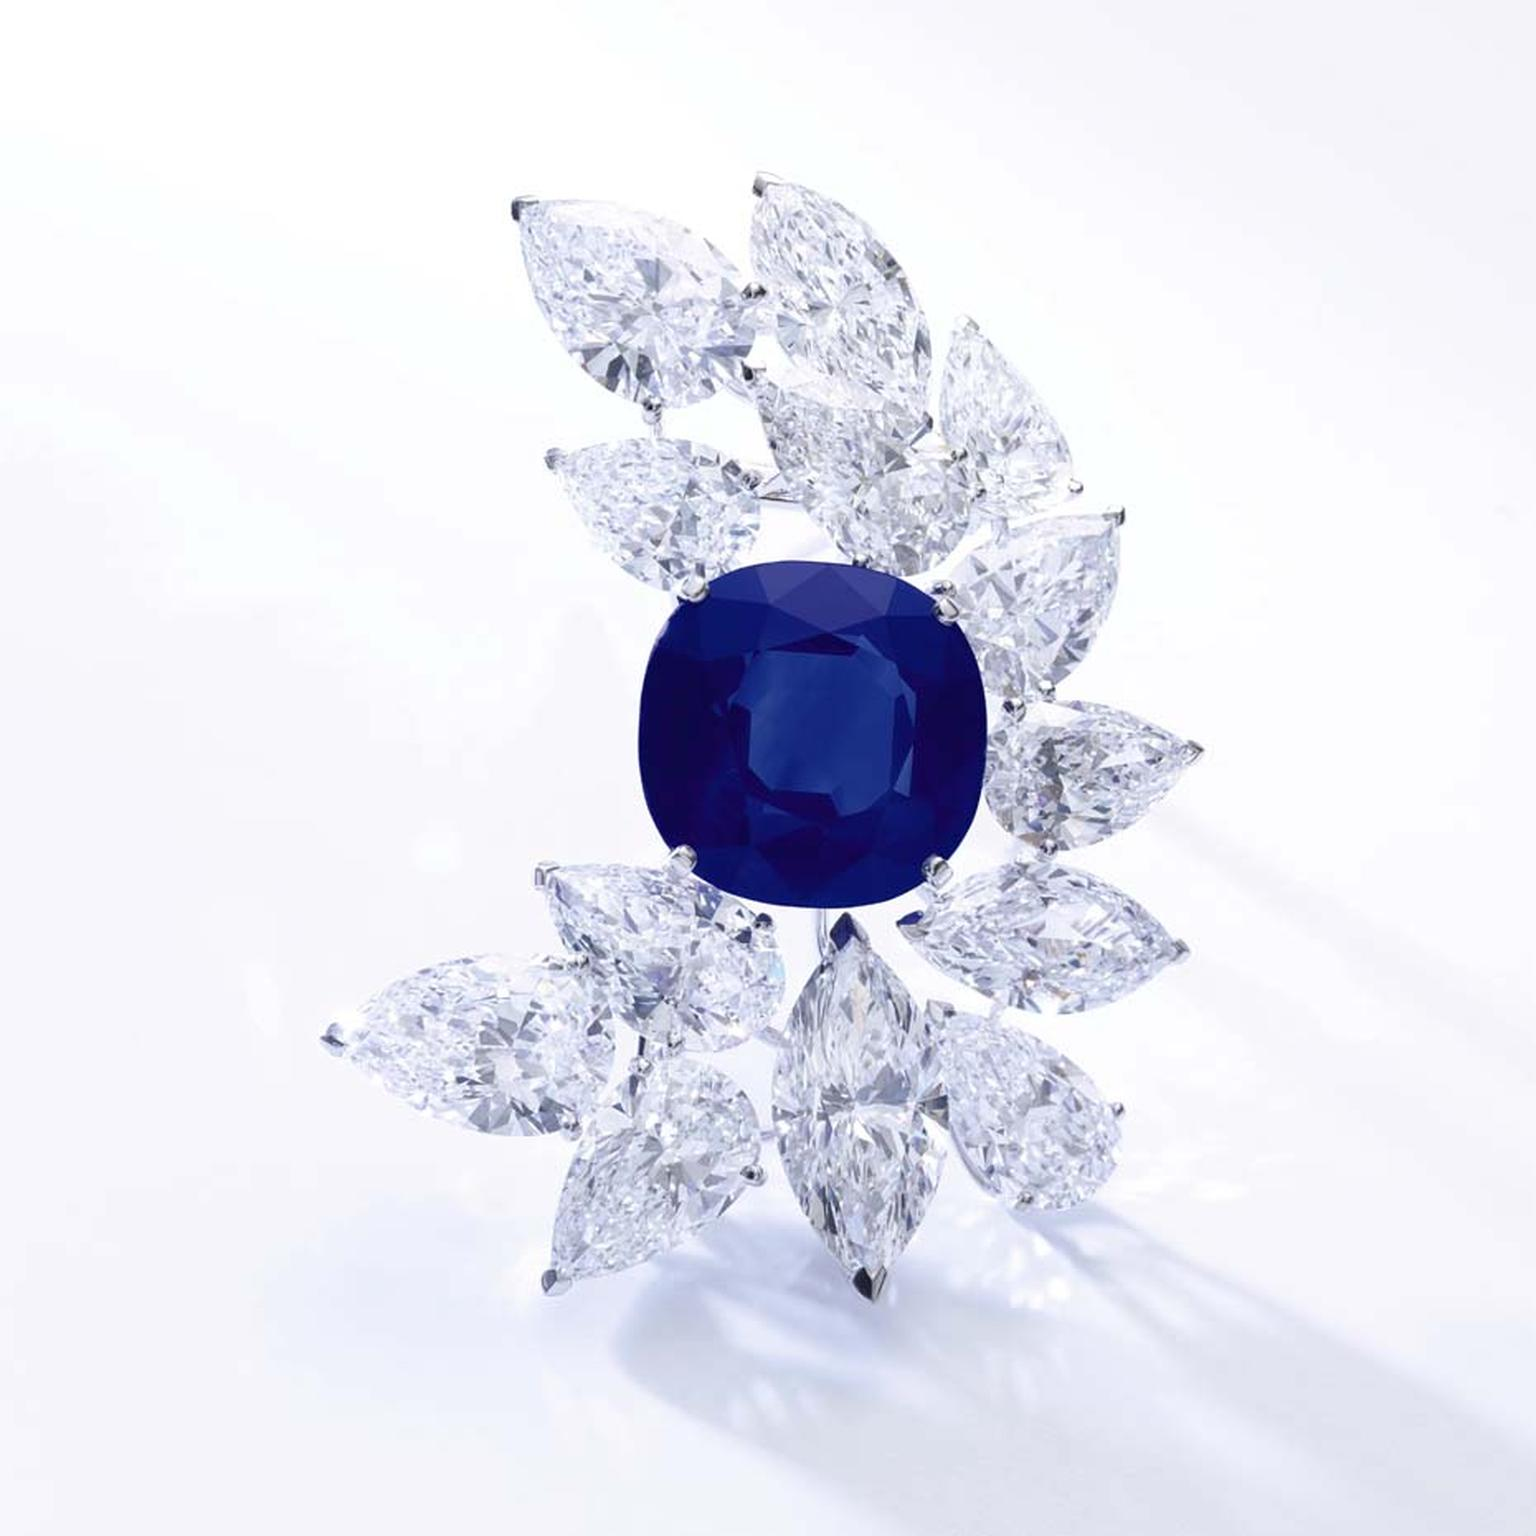 A Cartier brooch set with diamonds and a 27.54ct Kashmir sapphire broke the record for a Kashmir sapphire jewel when it sold for $6.16 million, bringing the total world records smashed to six at Sotheby's Magnificent Jewels and Noble Jewels spring auction